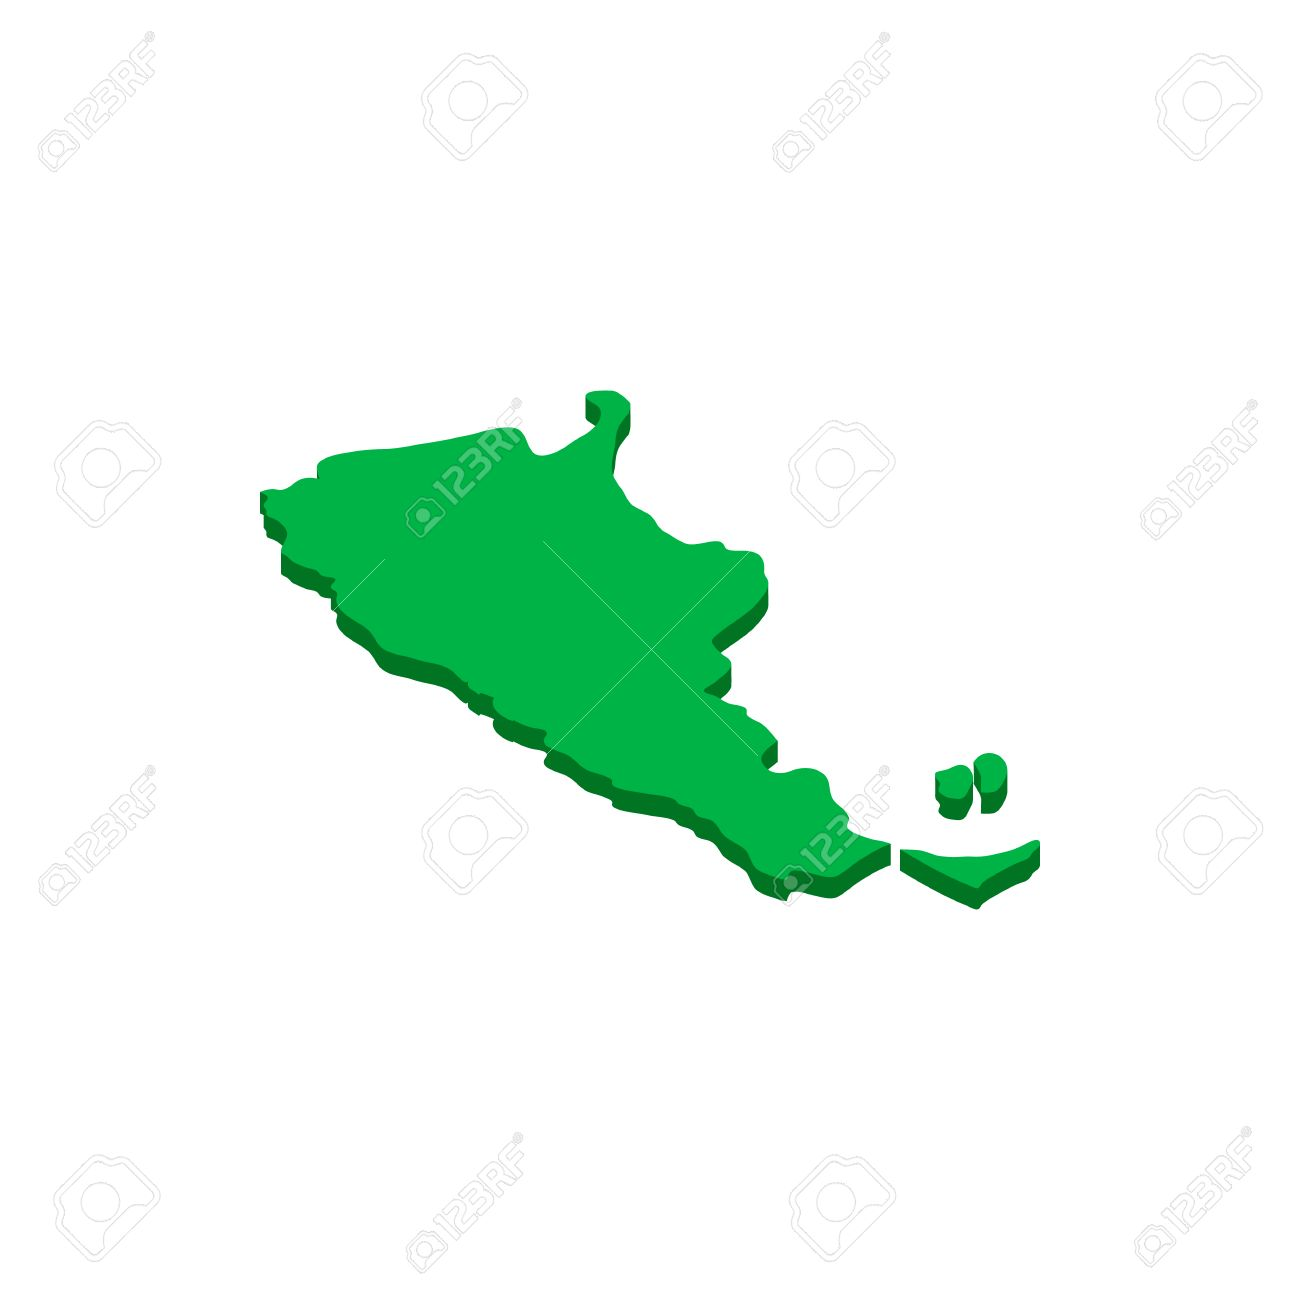 Map Of Argentina Icon In Isometric D Style Isolated On White - Argentina 3d map